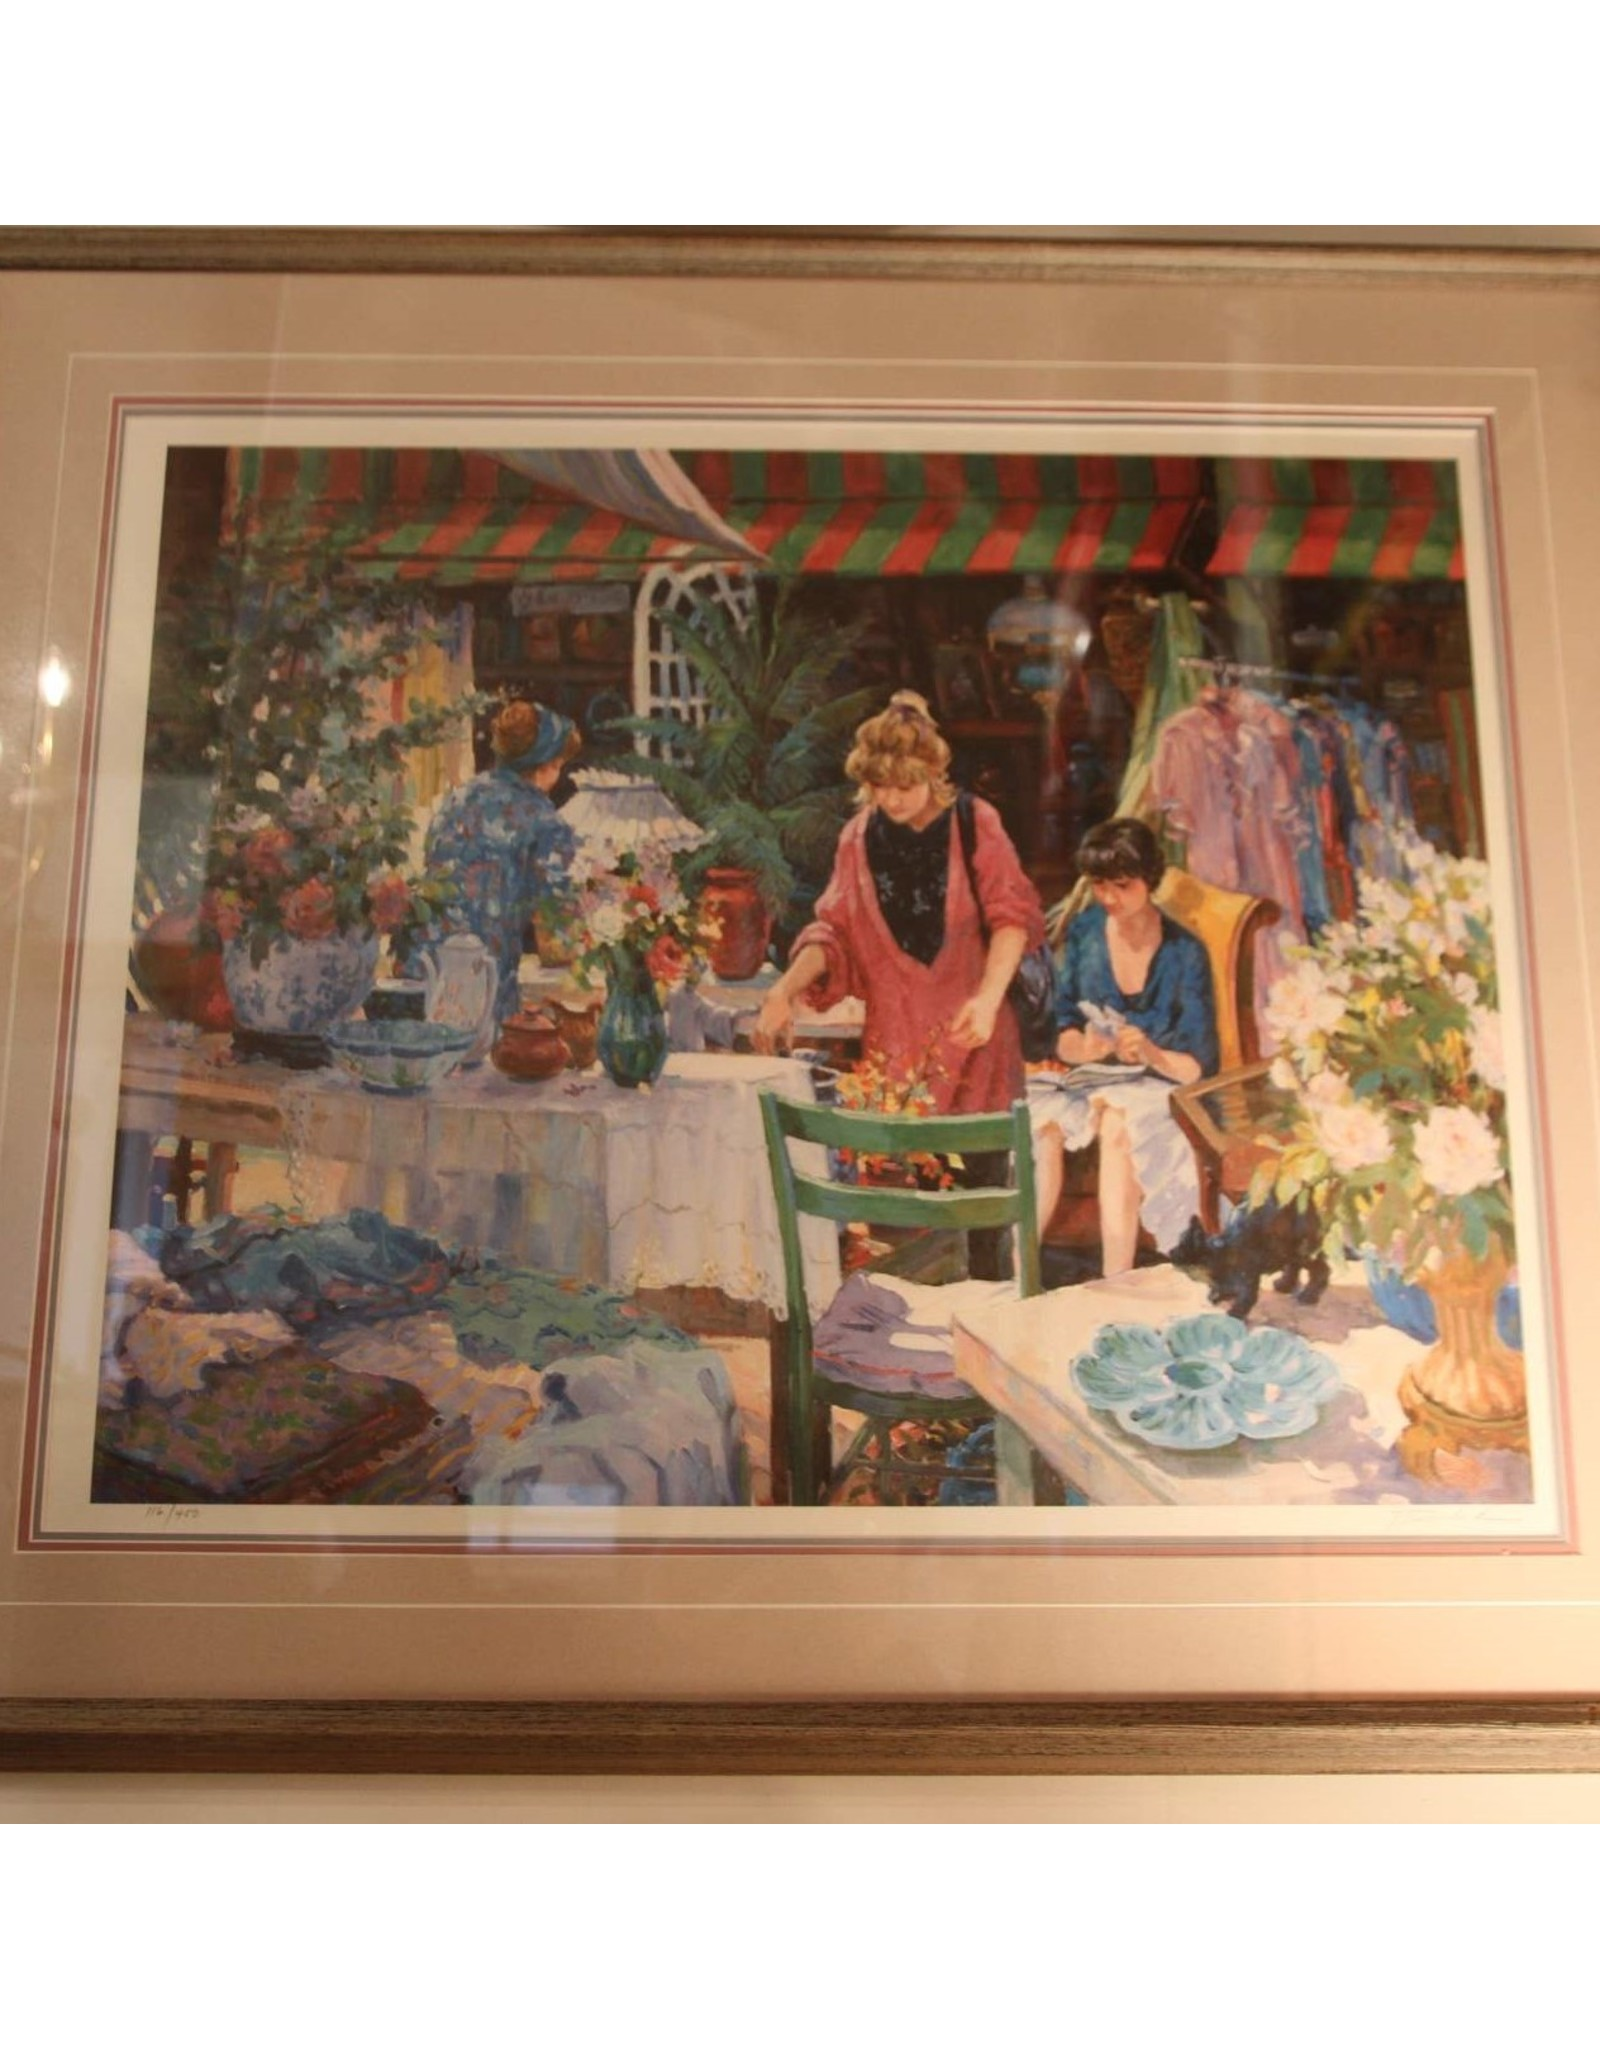 Framed limited edition print - women at cafe, flowers, 116/450